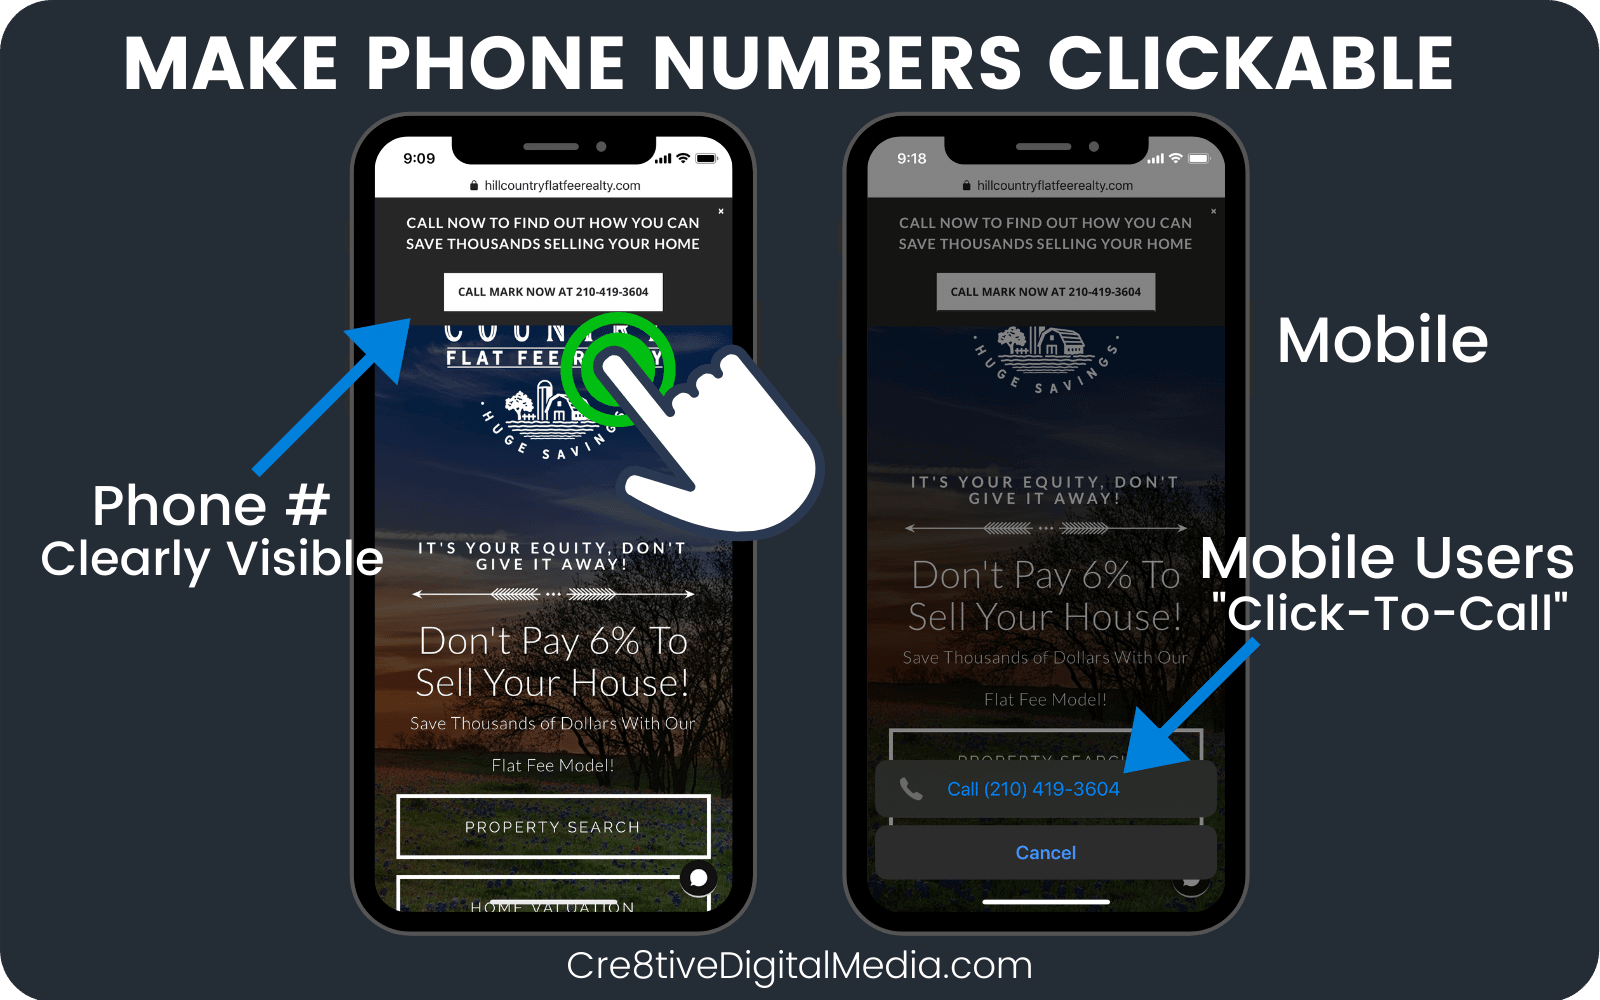 Display Phone Number as a click-able link